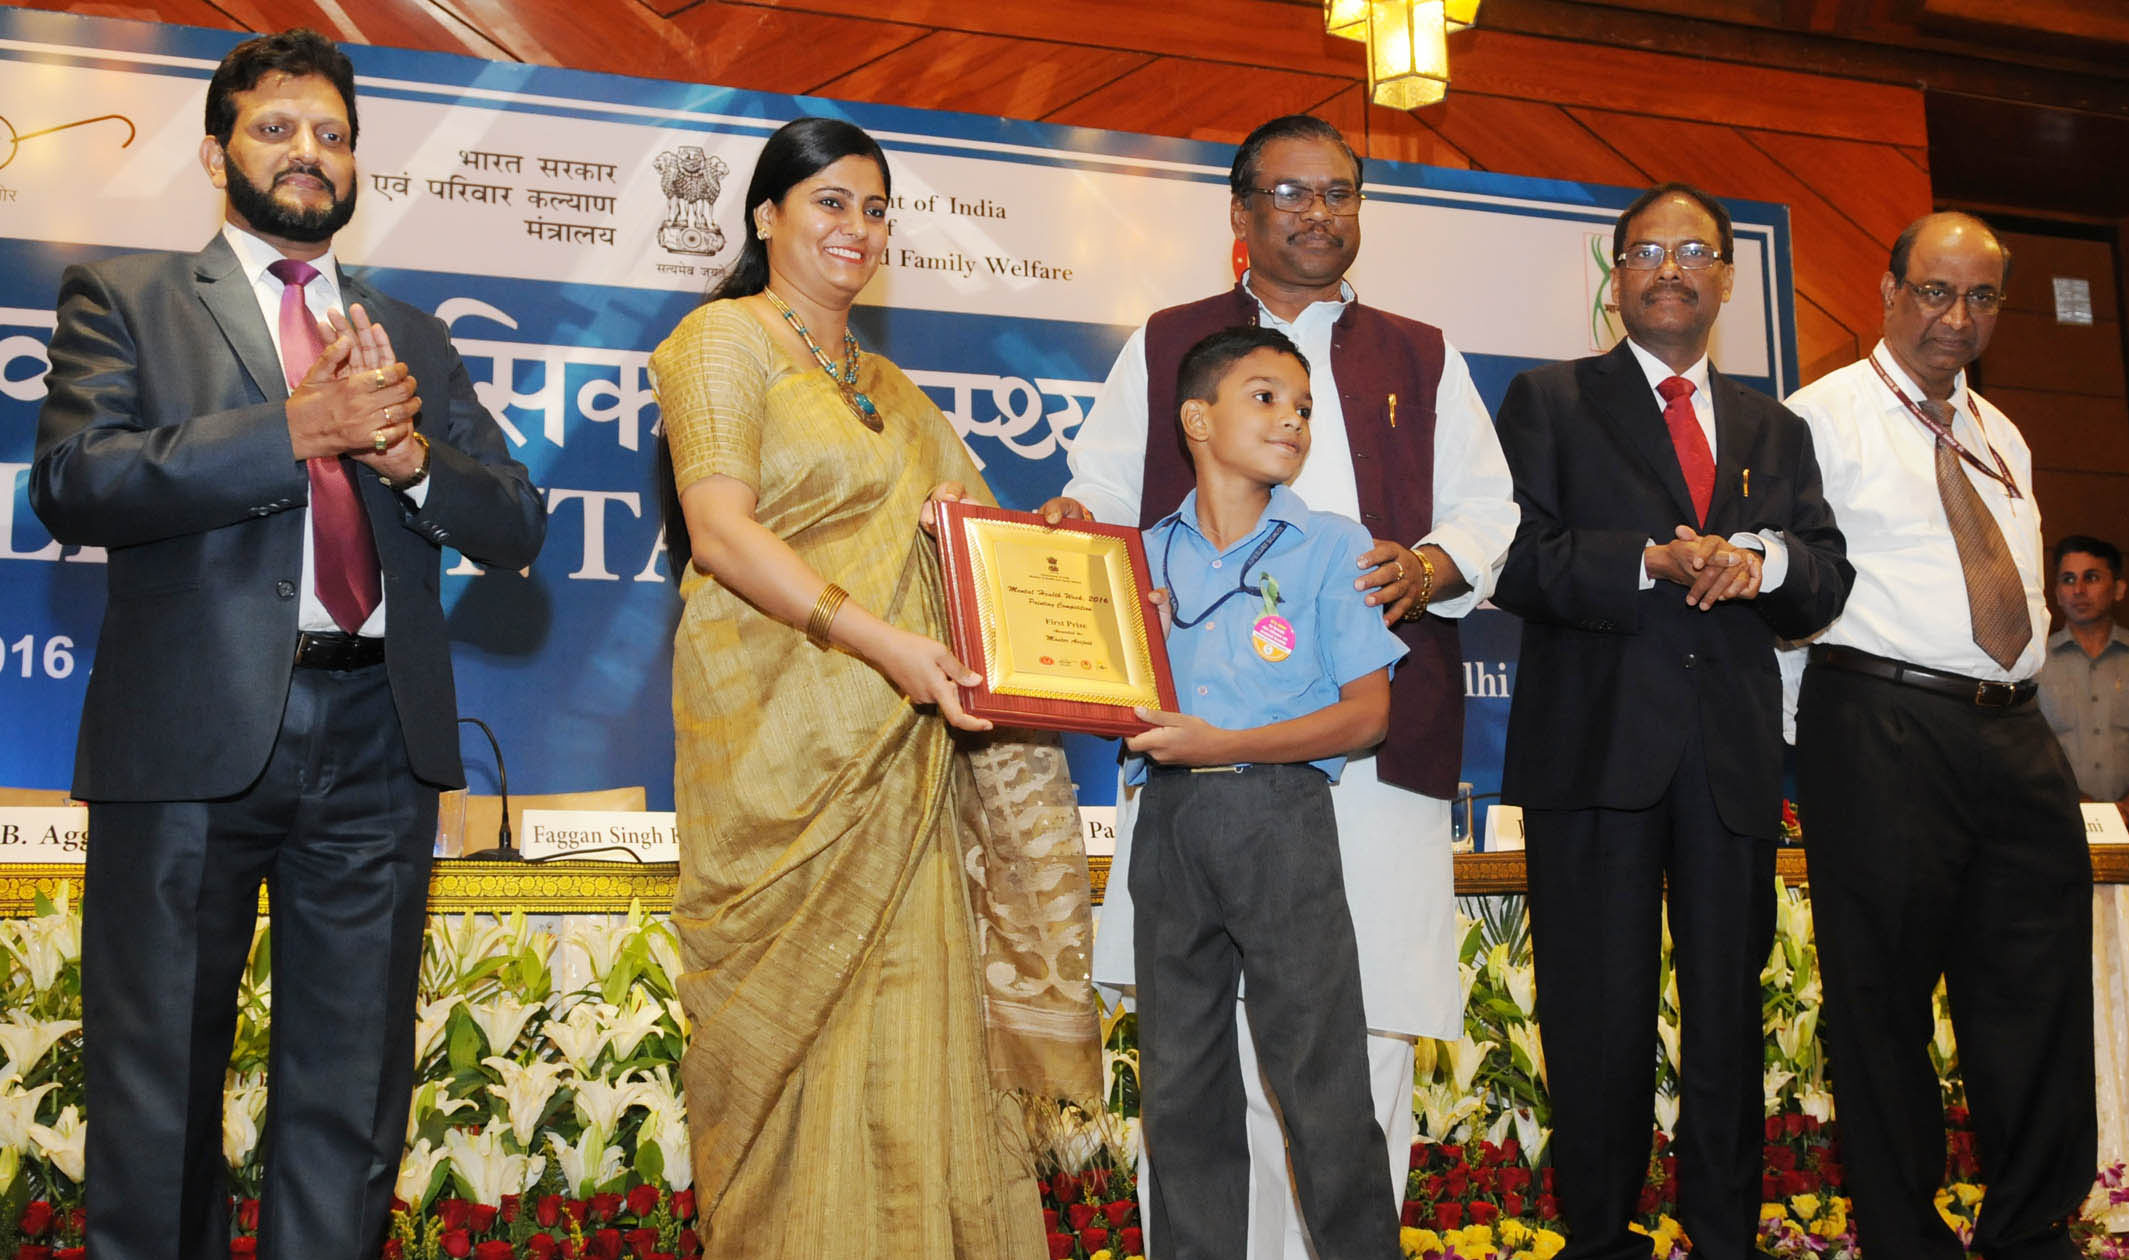 FileFaggan Singh Kulaste And Smt Anupriya Patel Distributed The Prizes To Winners Of Painting Poster Competition During Mental Health